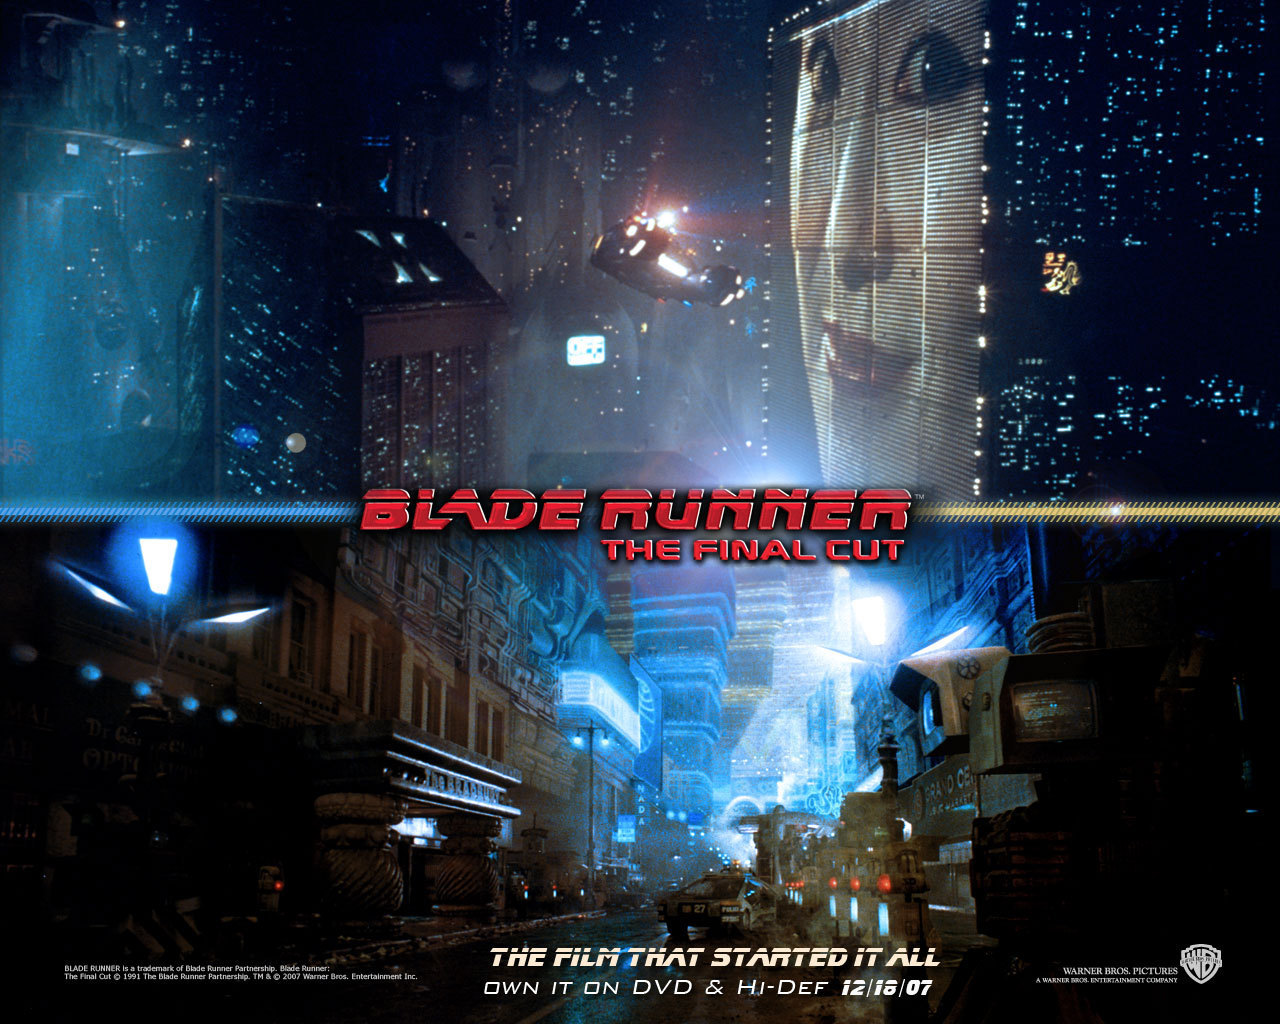 Blade Runner Wallpaper 1600x900 HD Wallpaper of Wallpaper 1280x1024